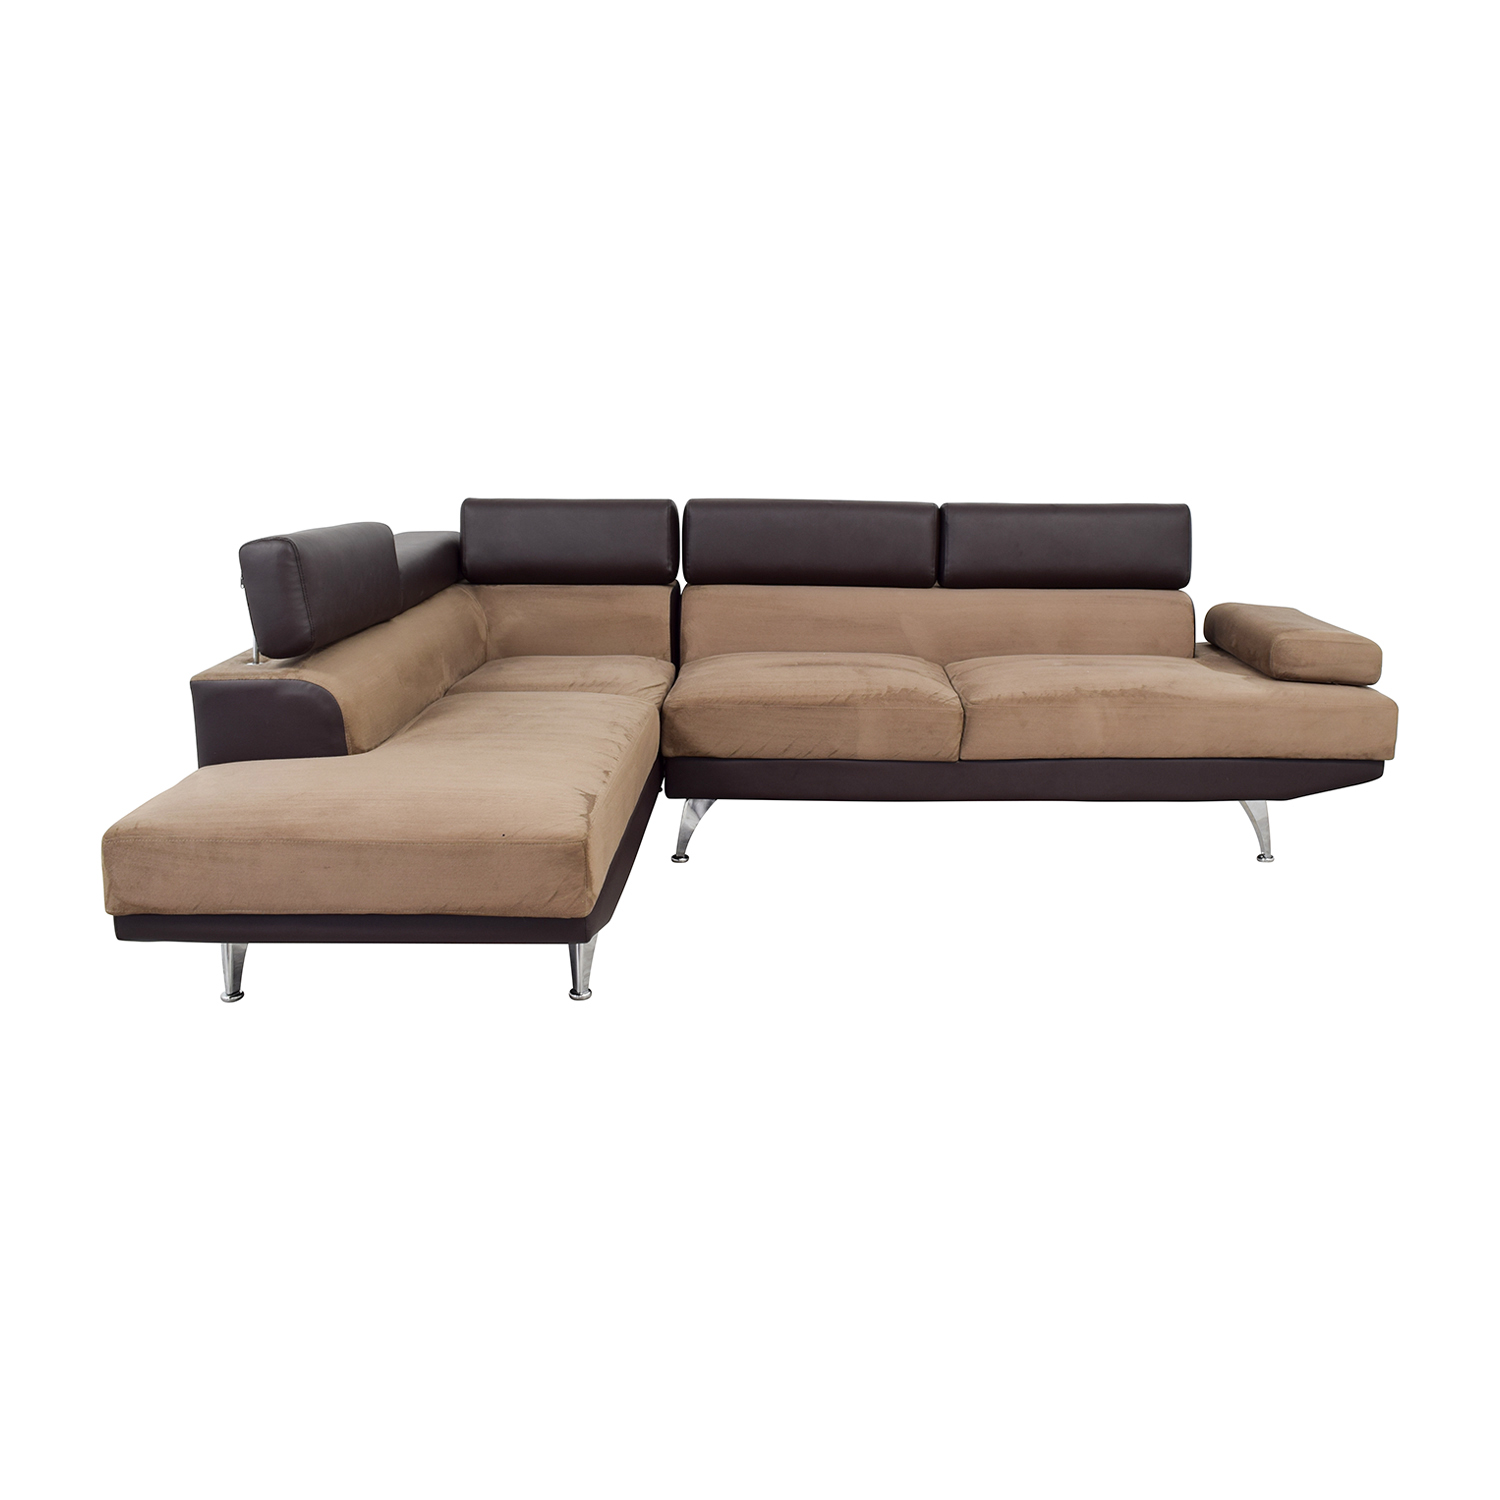 Wayfair Wayfair Berardi Brown Leather and Tan Fabric L-Shaped Sectional